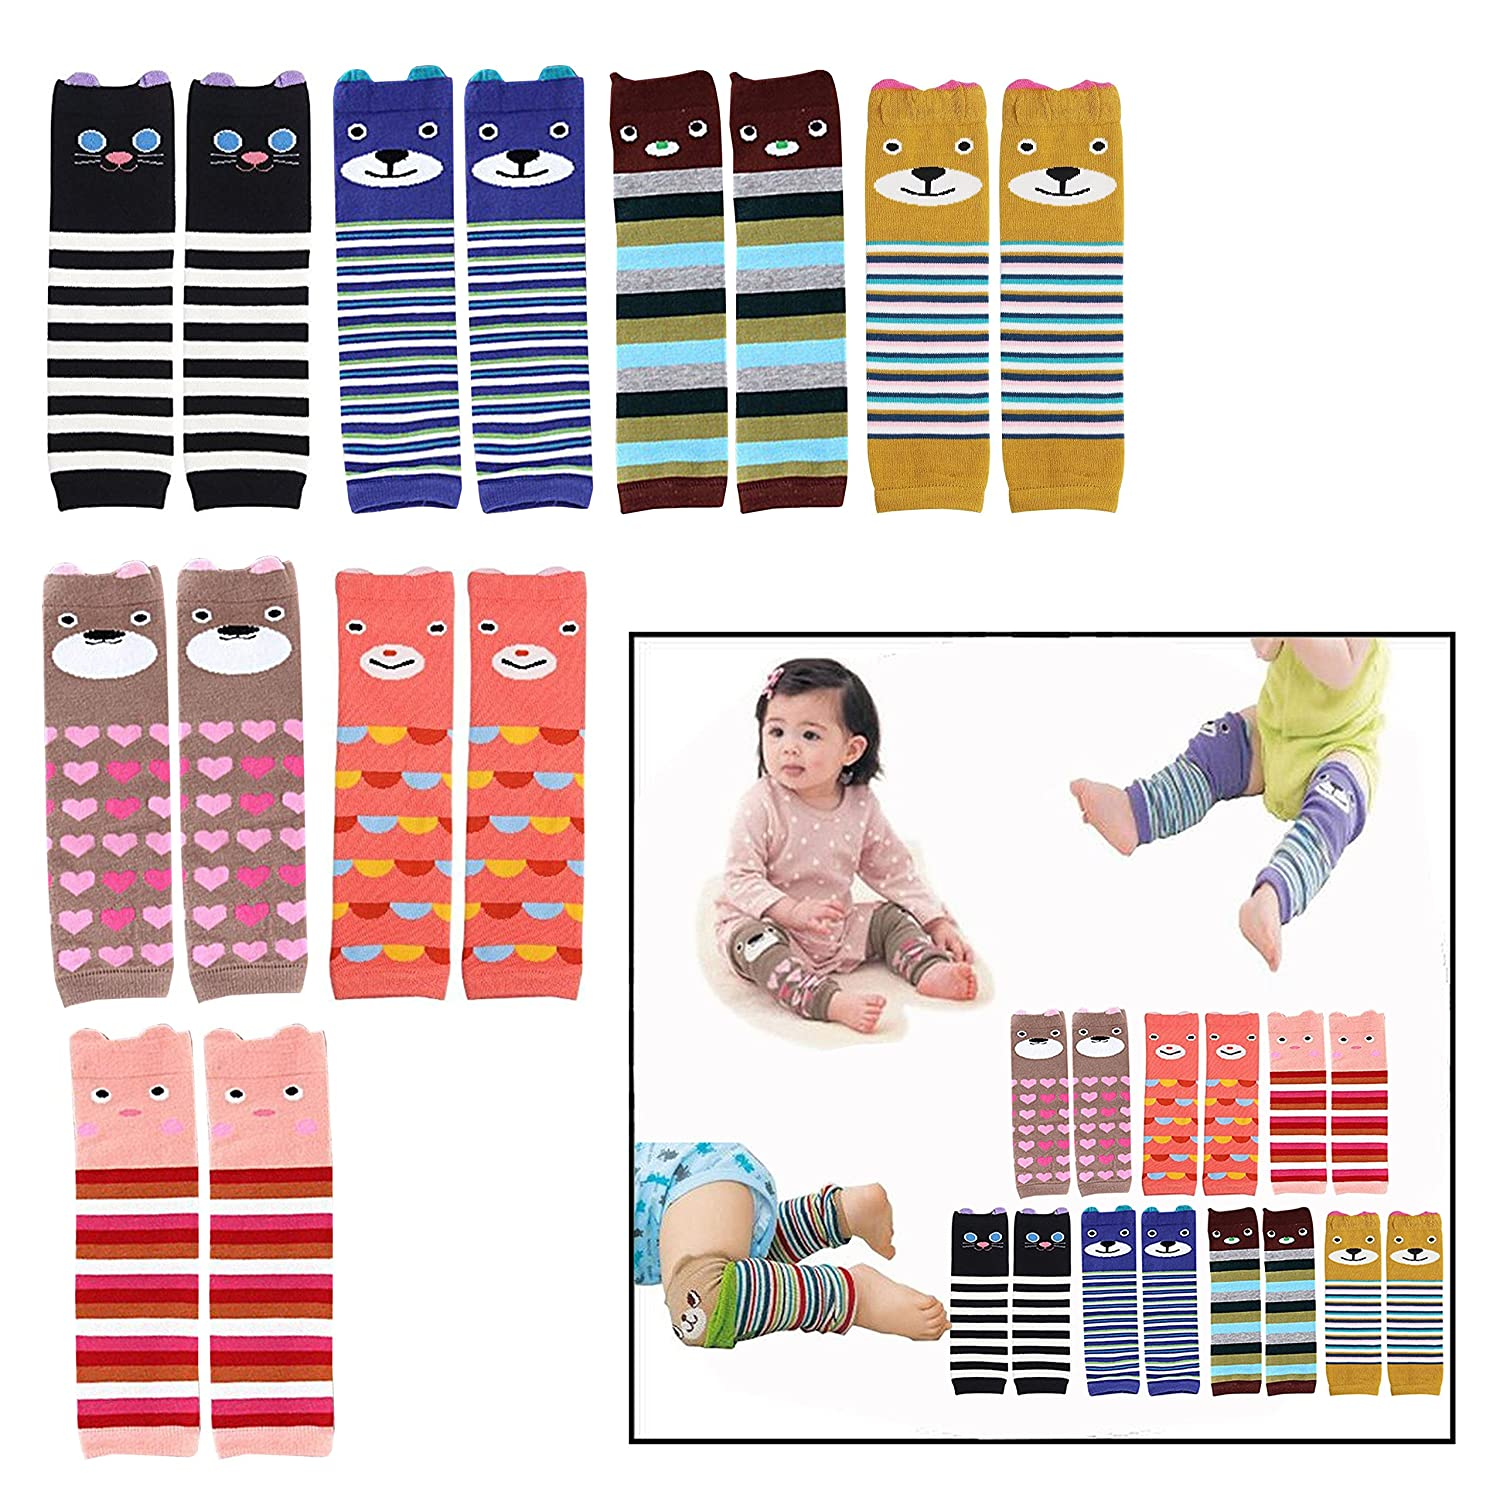 OFKPO 7 Pairs Cute Baby Leg Sleeve Warmers, Cartoon Knee Socks Protector for Infant